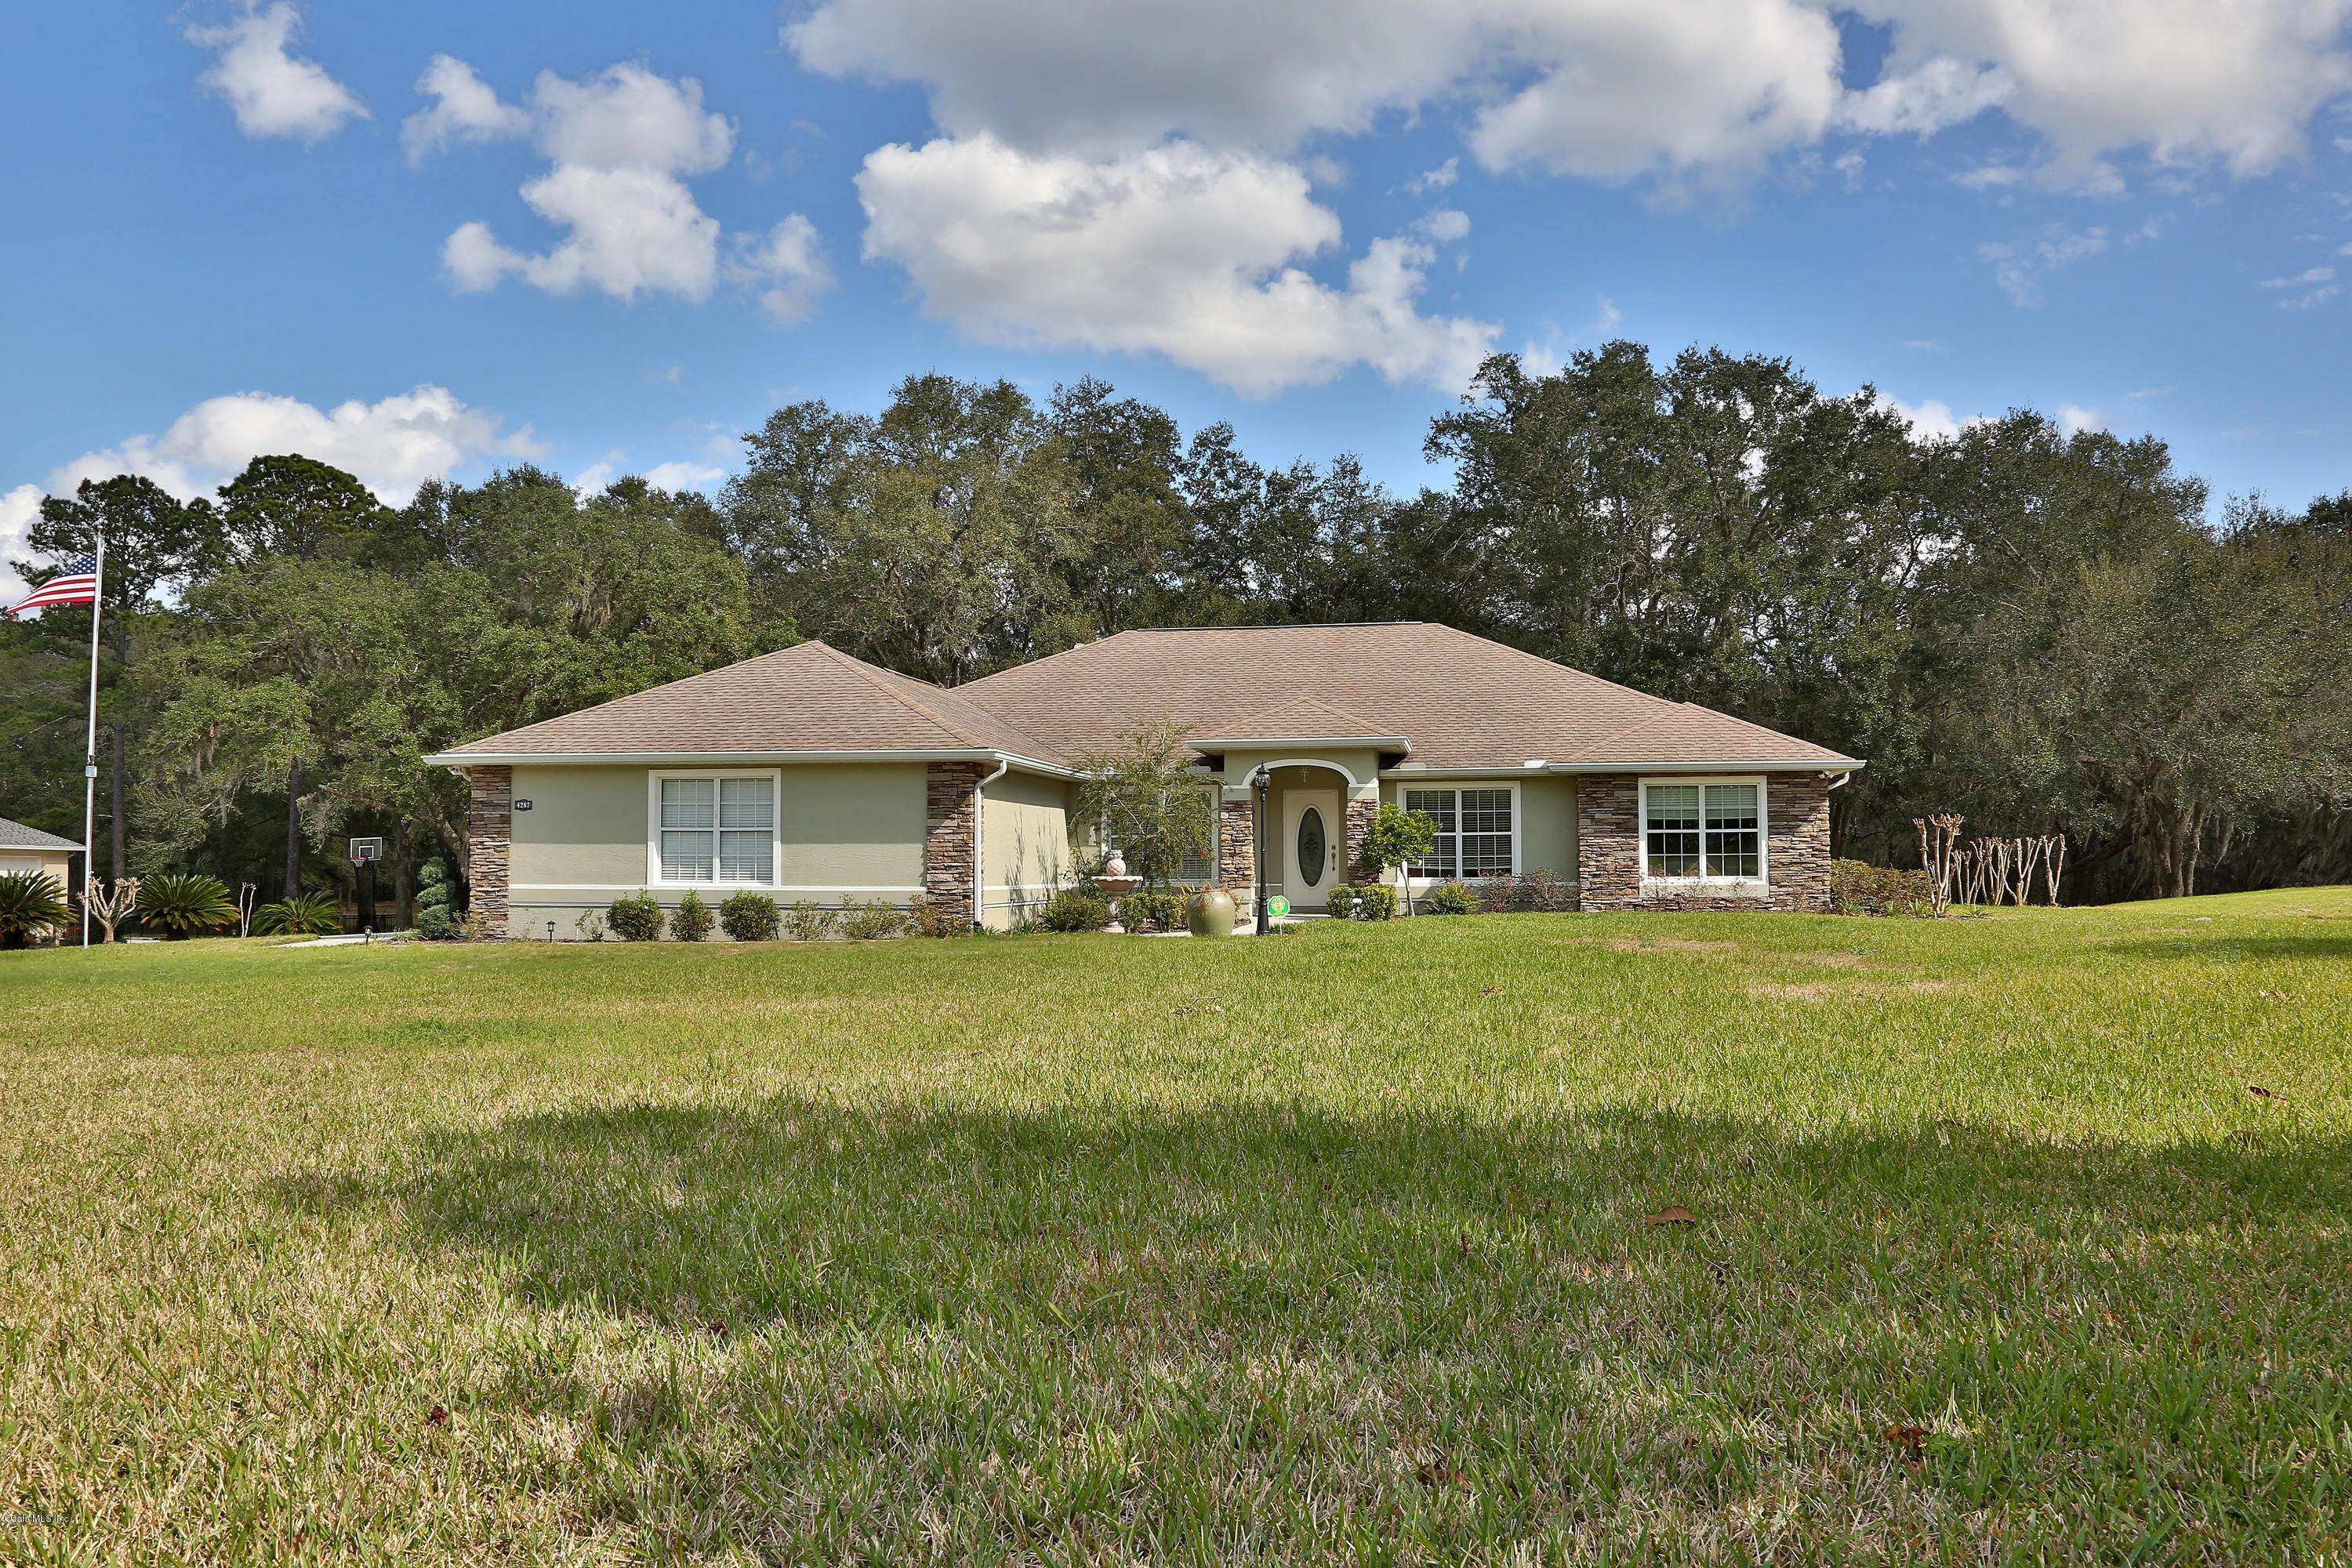 4287 NW 76TH COURT, OCALA, FL 34482